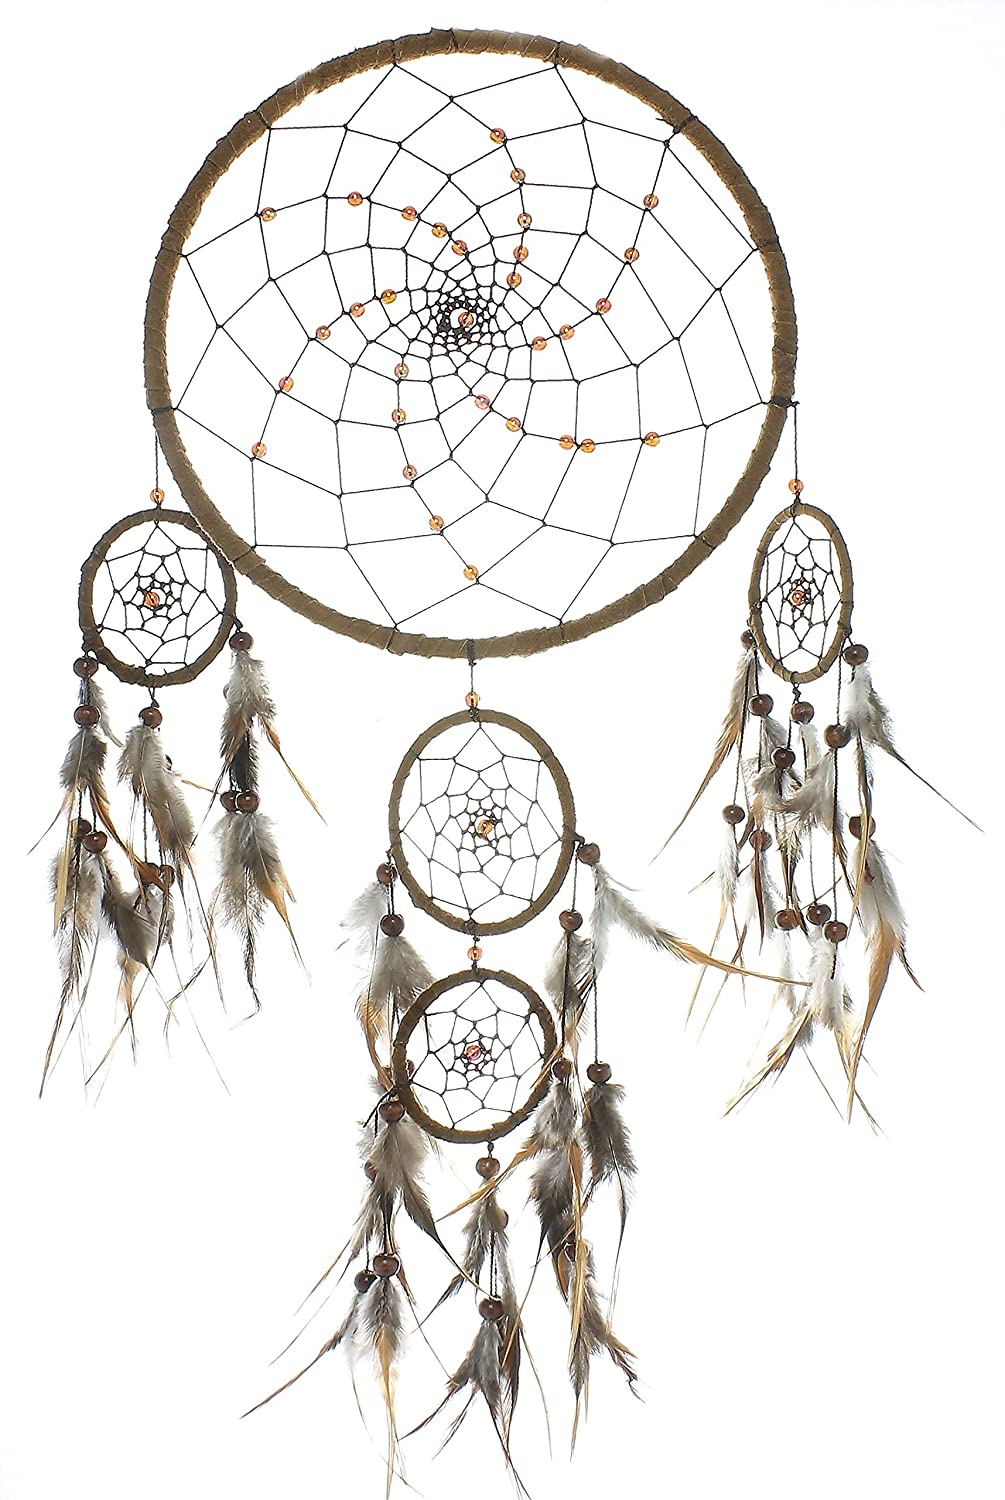 Earth Vibes Dreamcatcher,Large Brown Cosmic Dream Catcher, Dreamcatcher, Wall Hanging, Home Decor